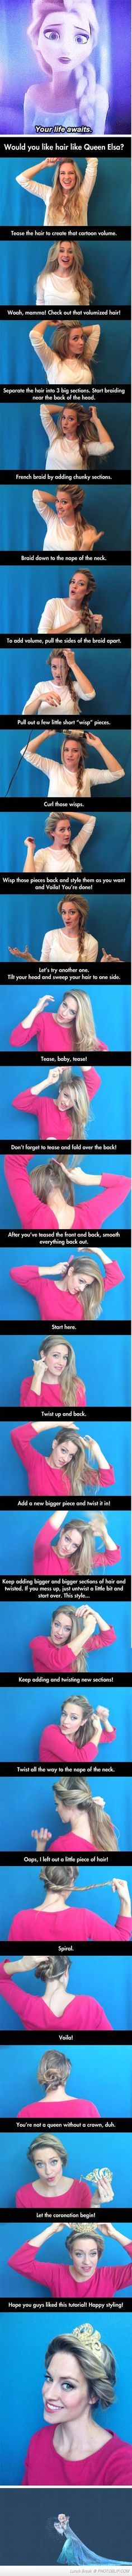 How To Style Your Hair Like Elsa From Frozen.  Adorable!!  Obviously I am obsessed with this movie lol